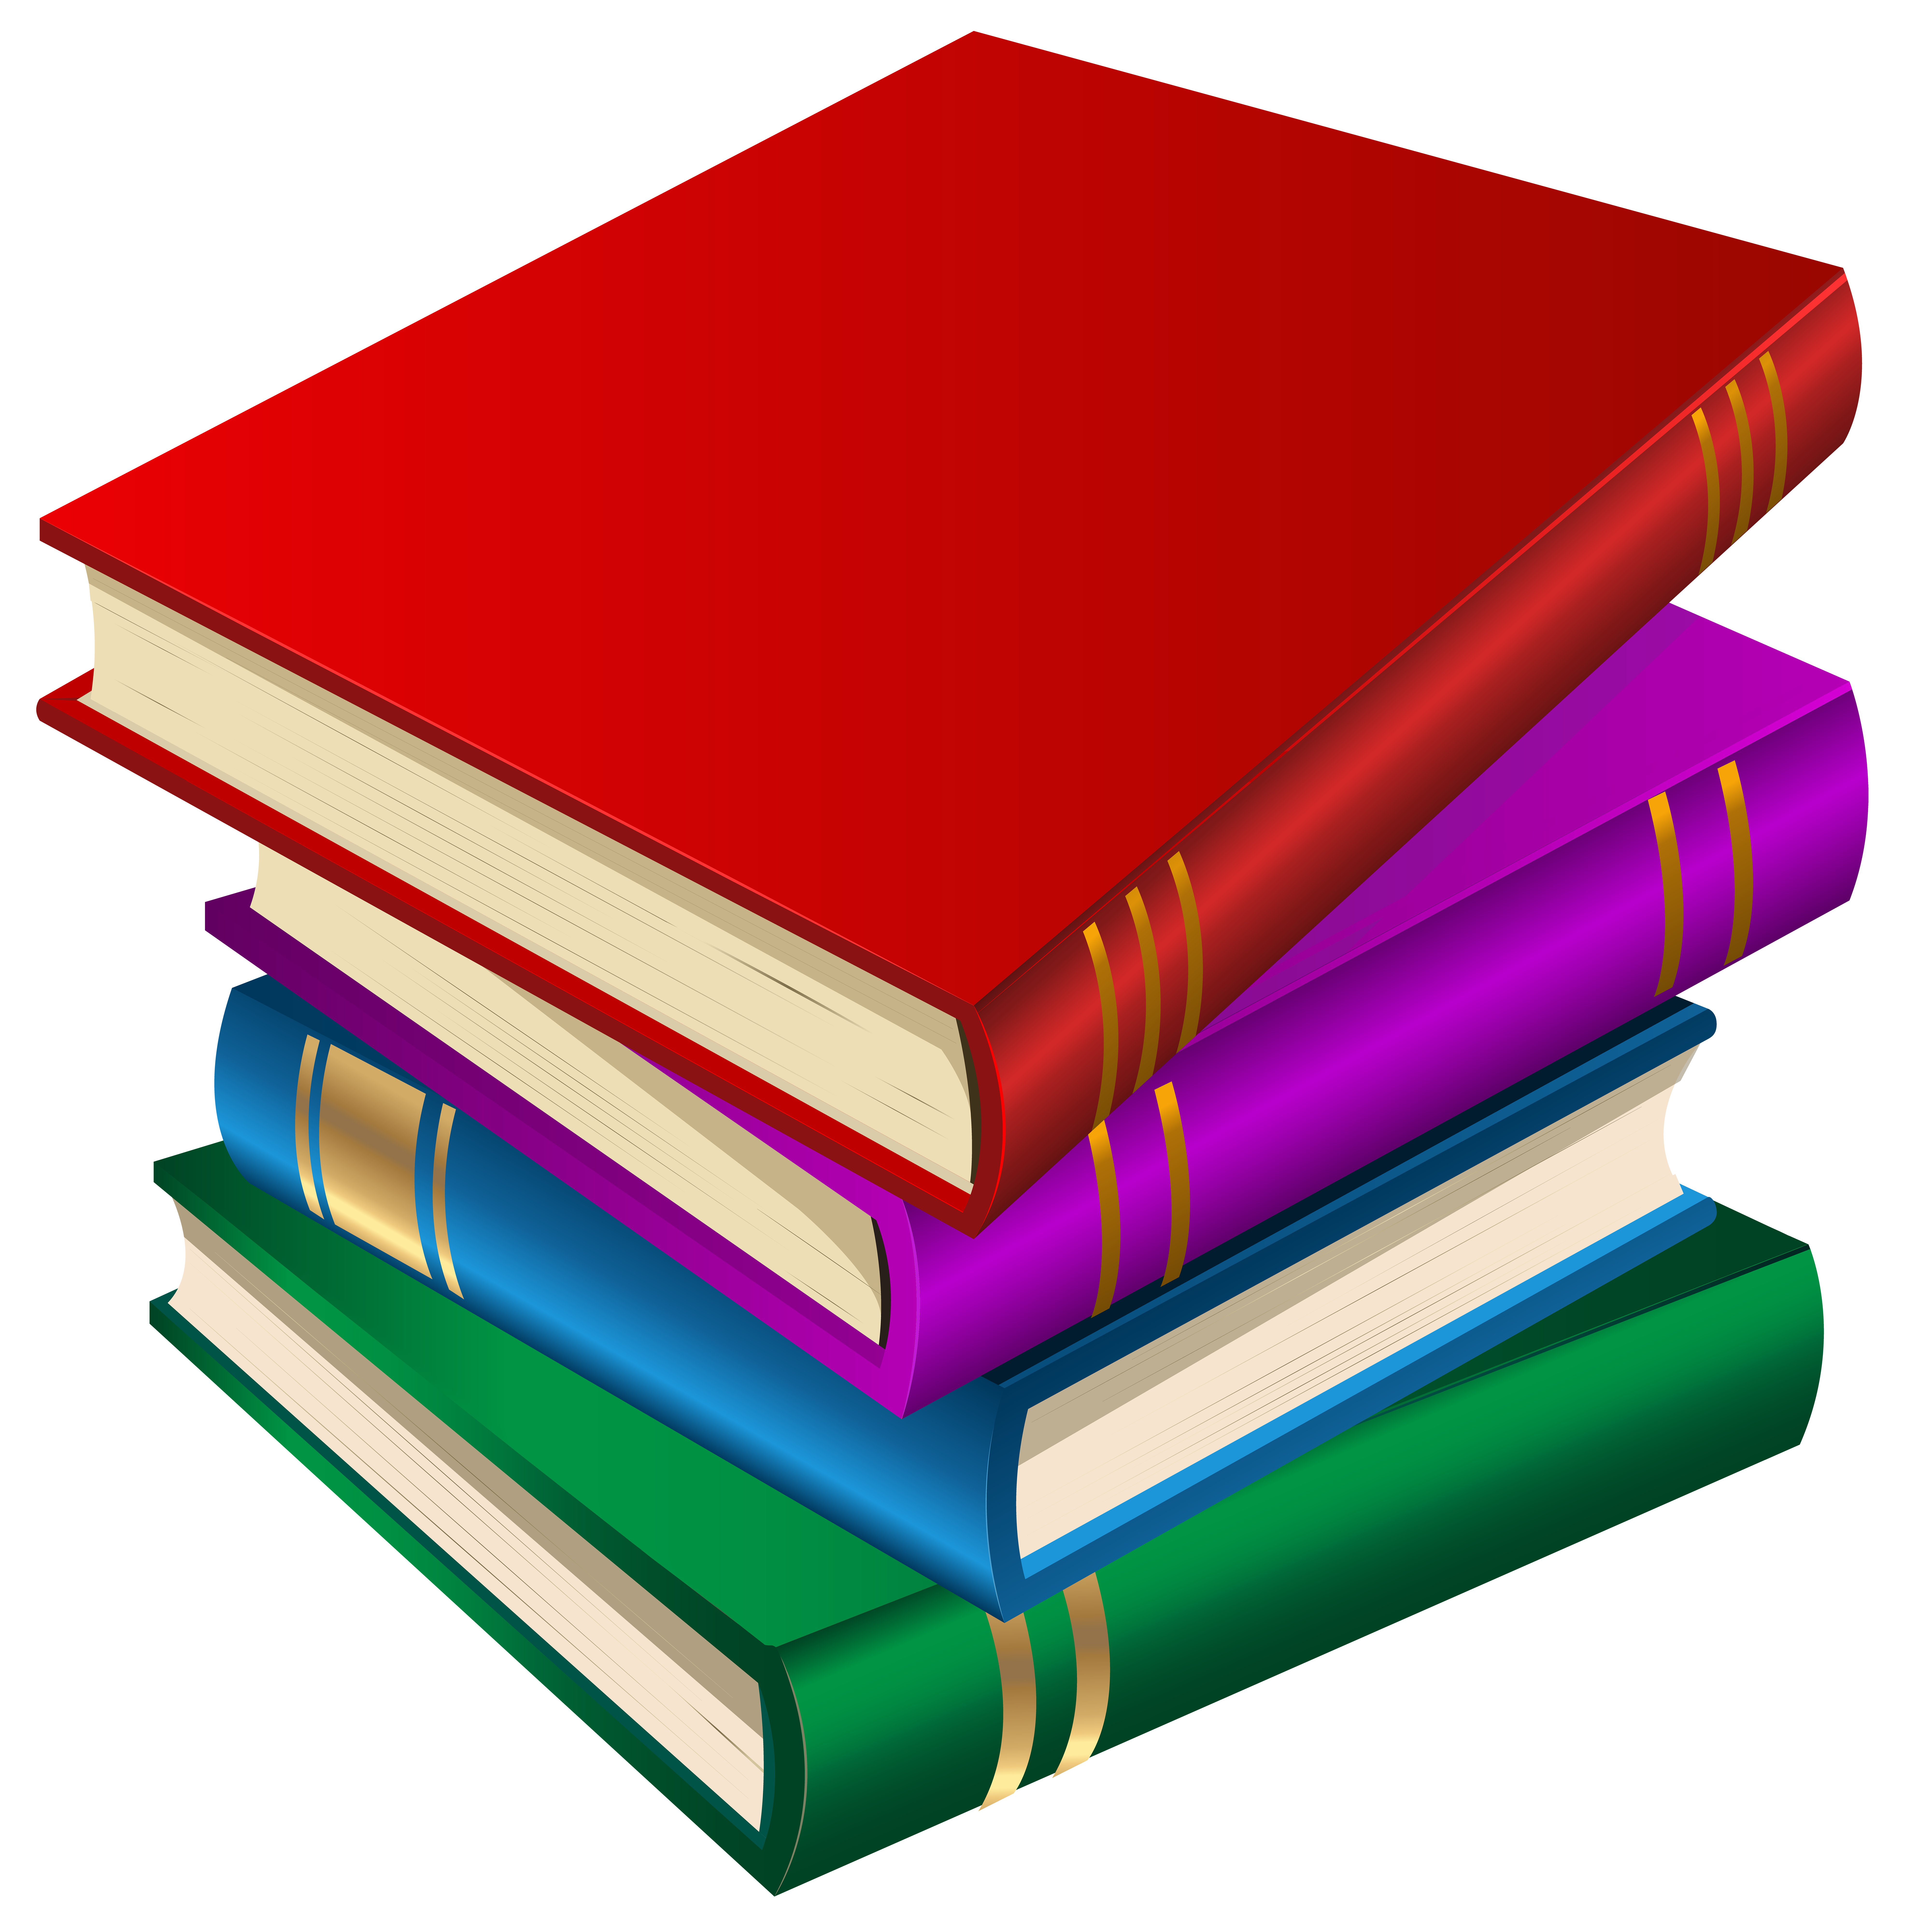 svg transparent library Png image gallery yopriceville. Books clipart